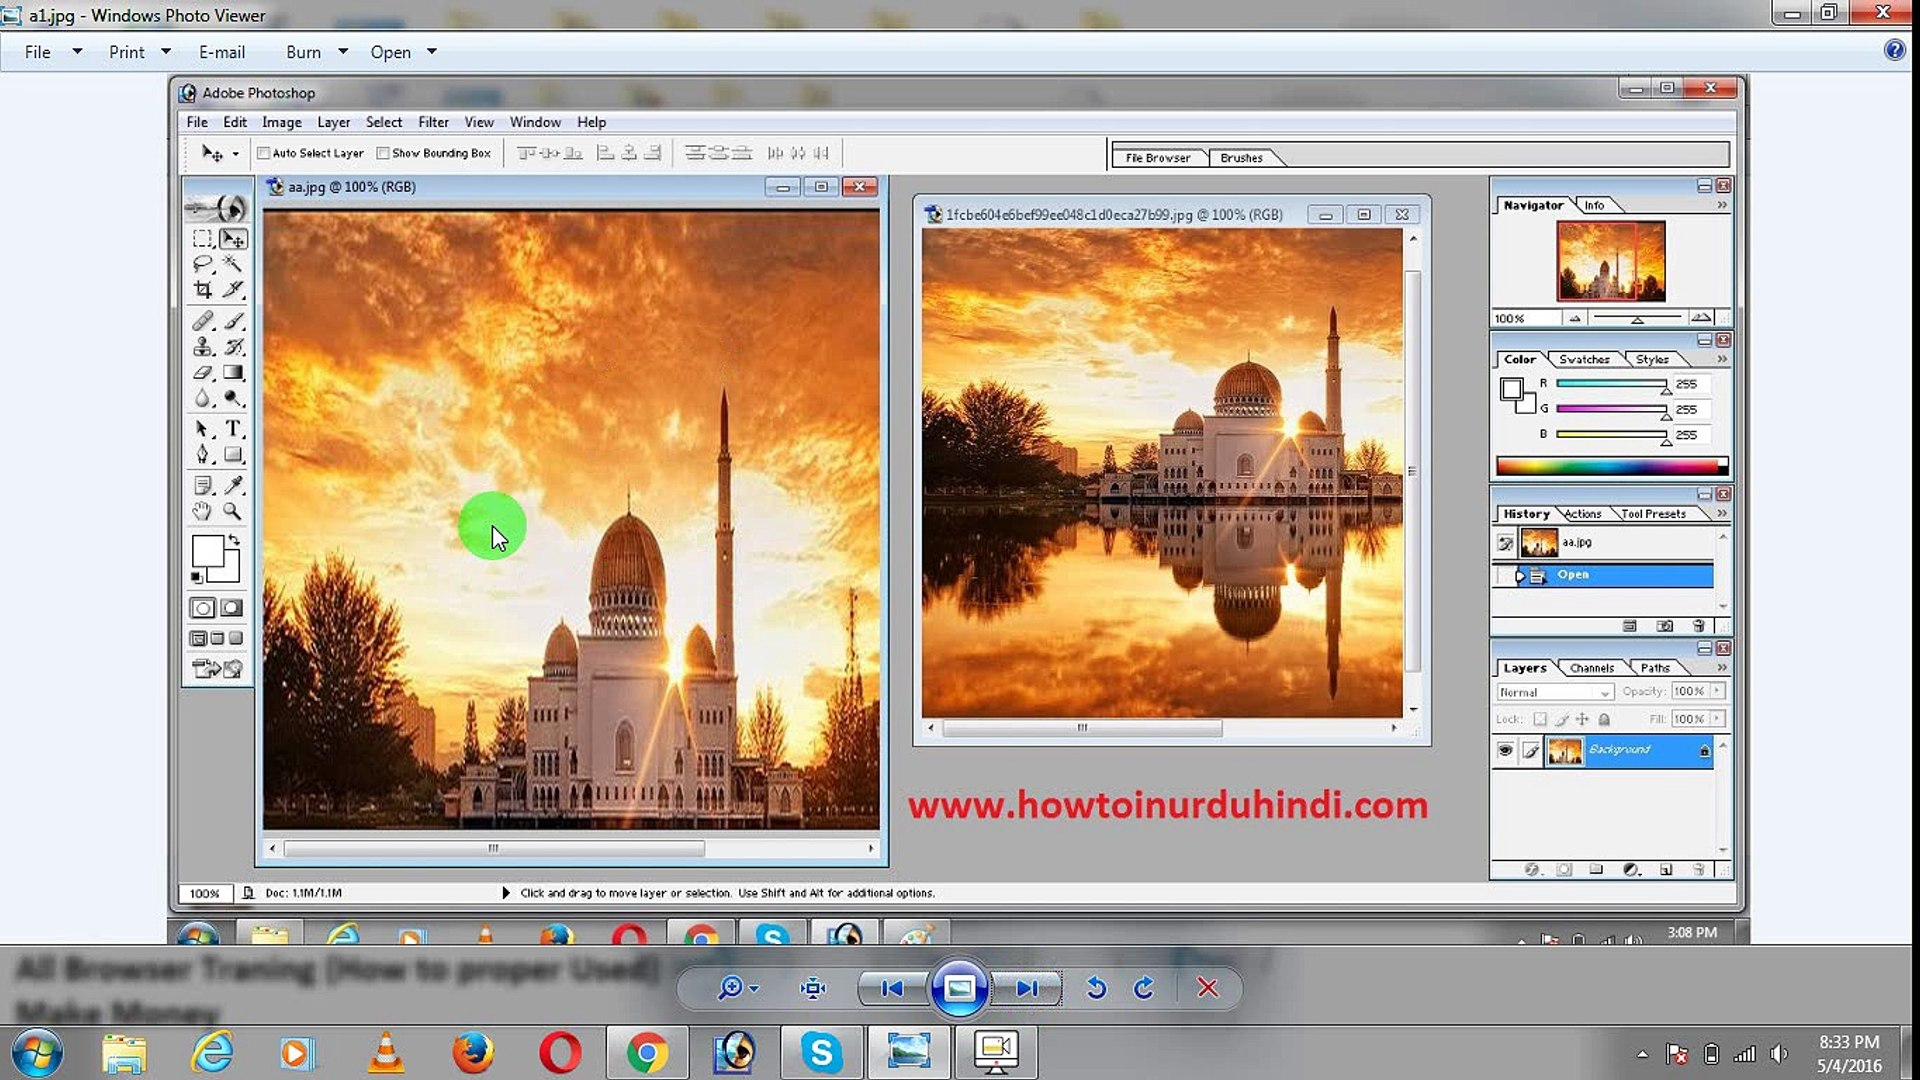 Photoshop Tutorial In Urdu | Photoshop Tutorial In Hindi | Photoshop Traning Class 1